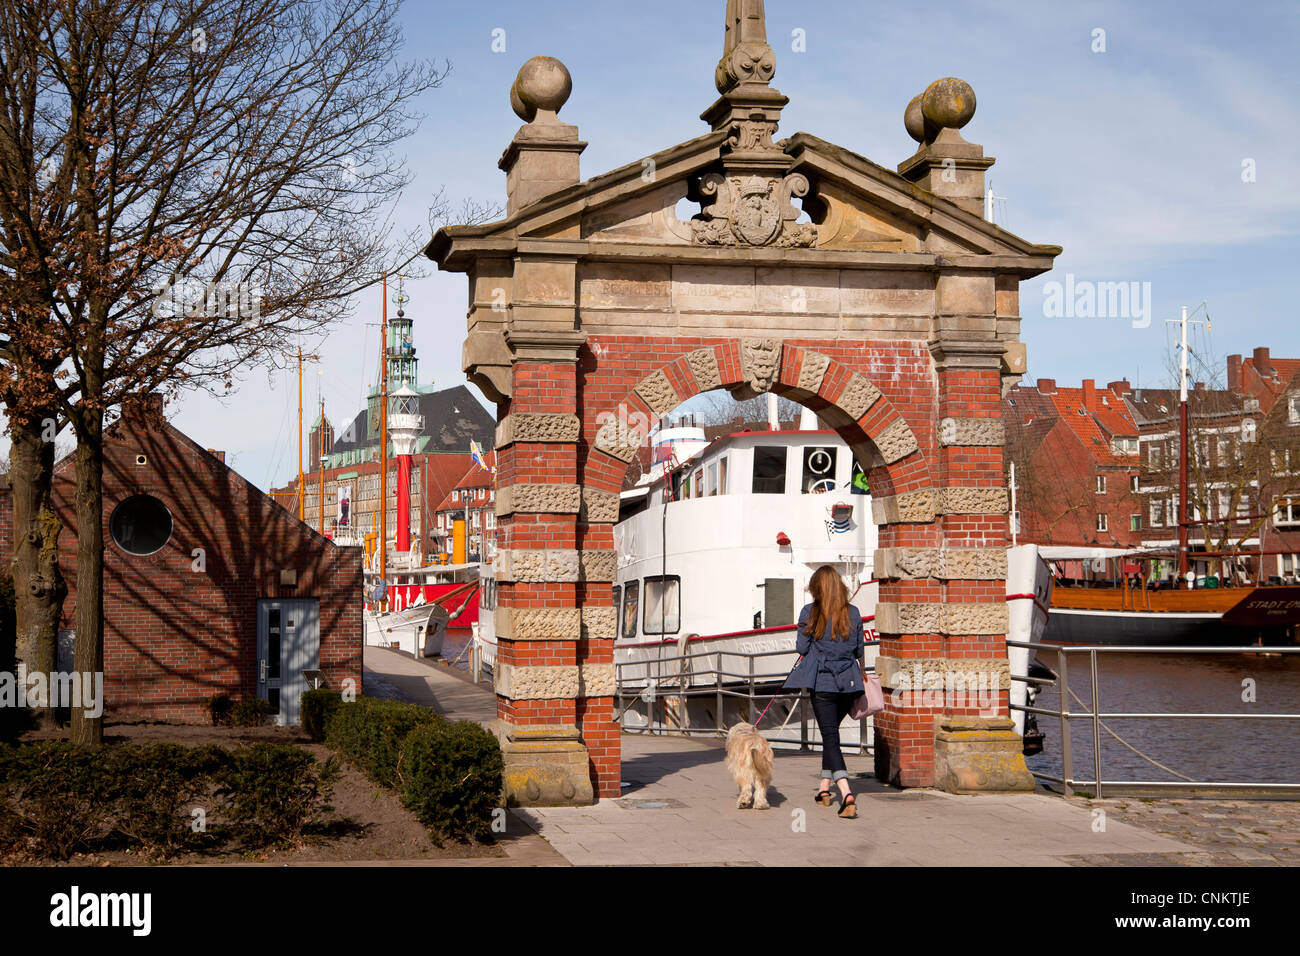 historic harbour gate ' Hafentor' Emden, East Frisia, Lower Saxony, Germany - Stock Image